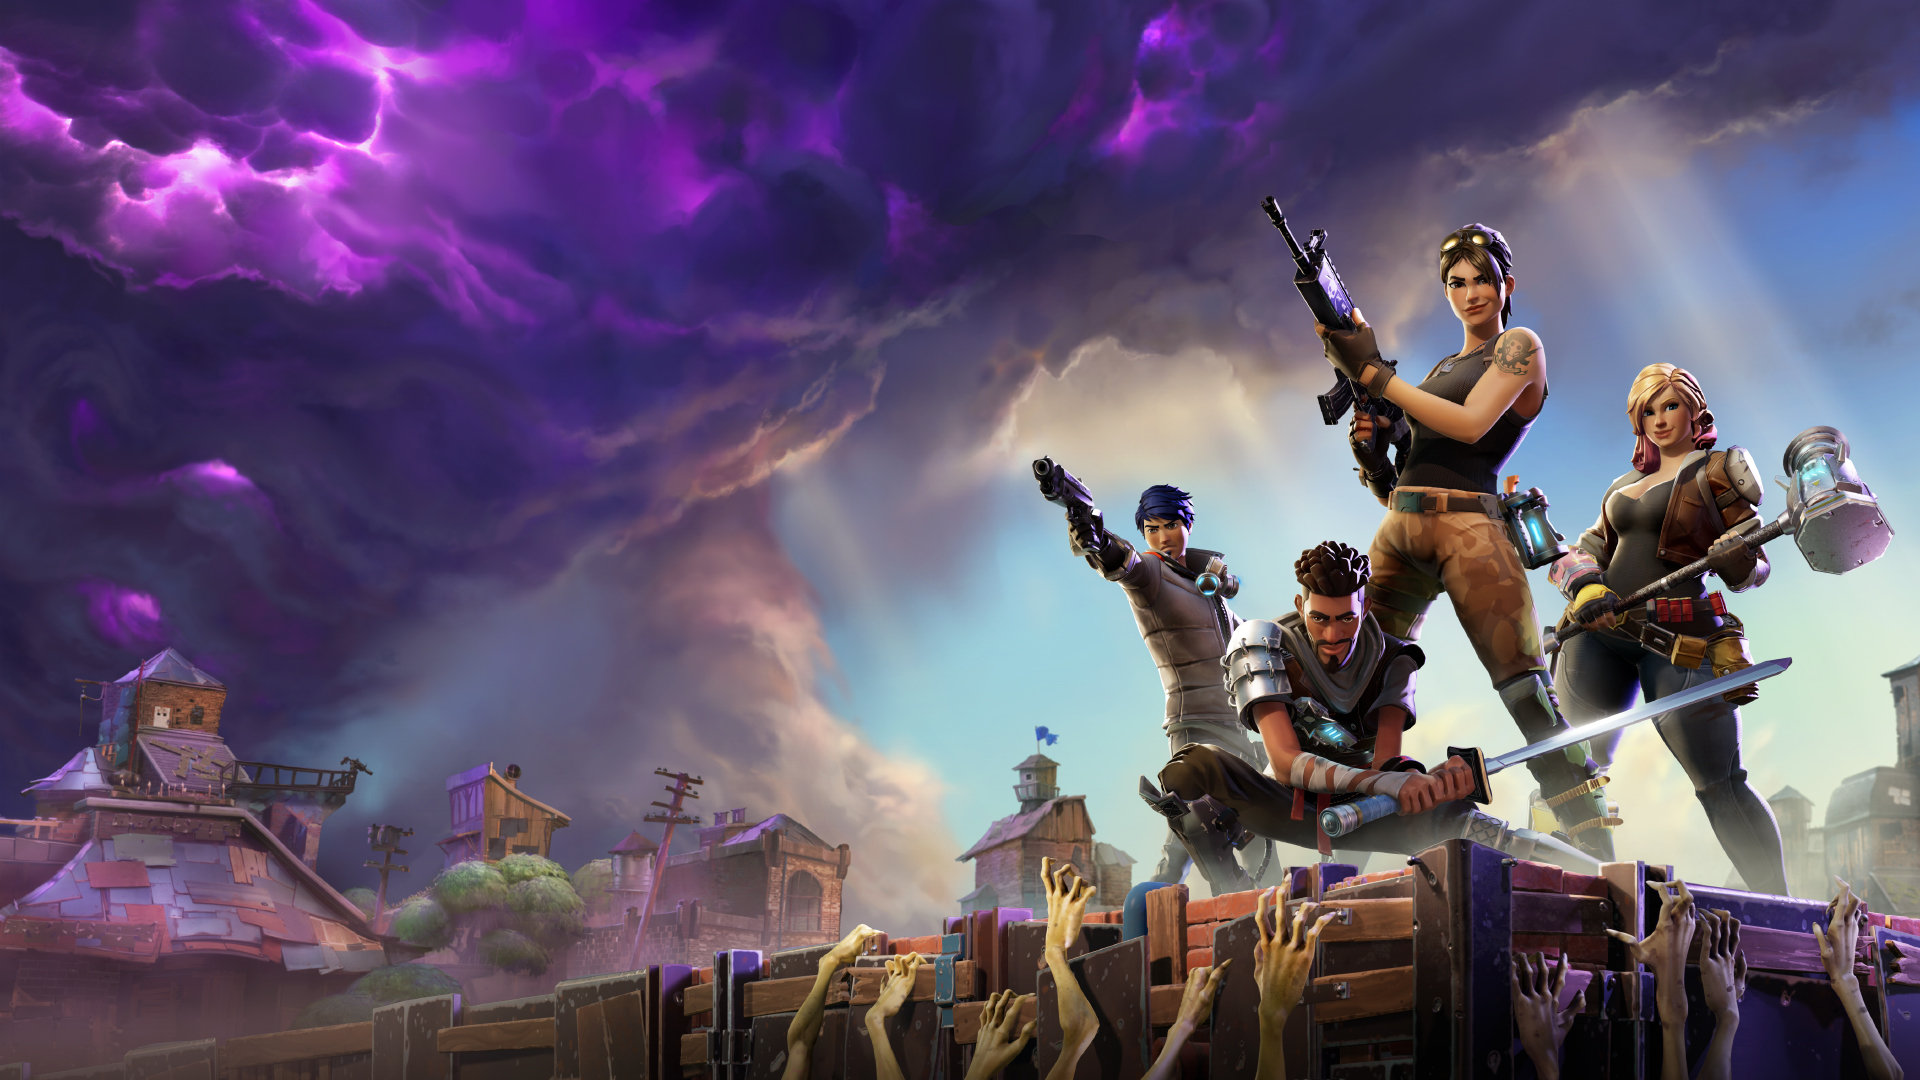 5 things you need to know about fortnite on mobile - how to unblock someone on fortnite xbox one